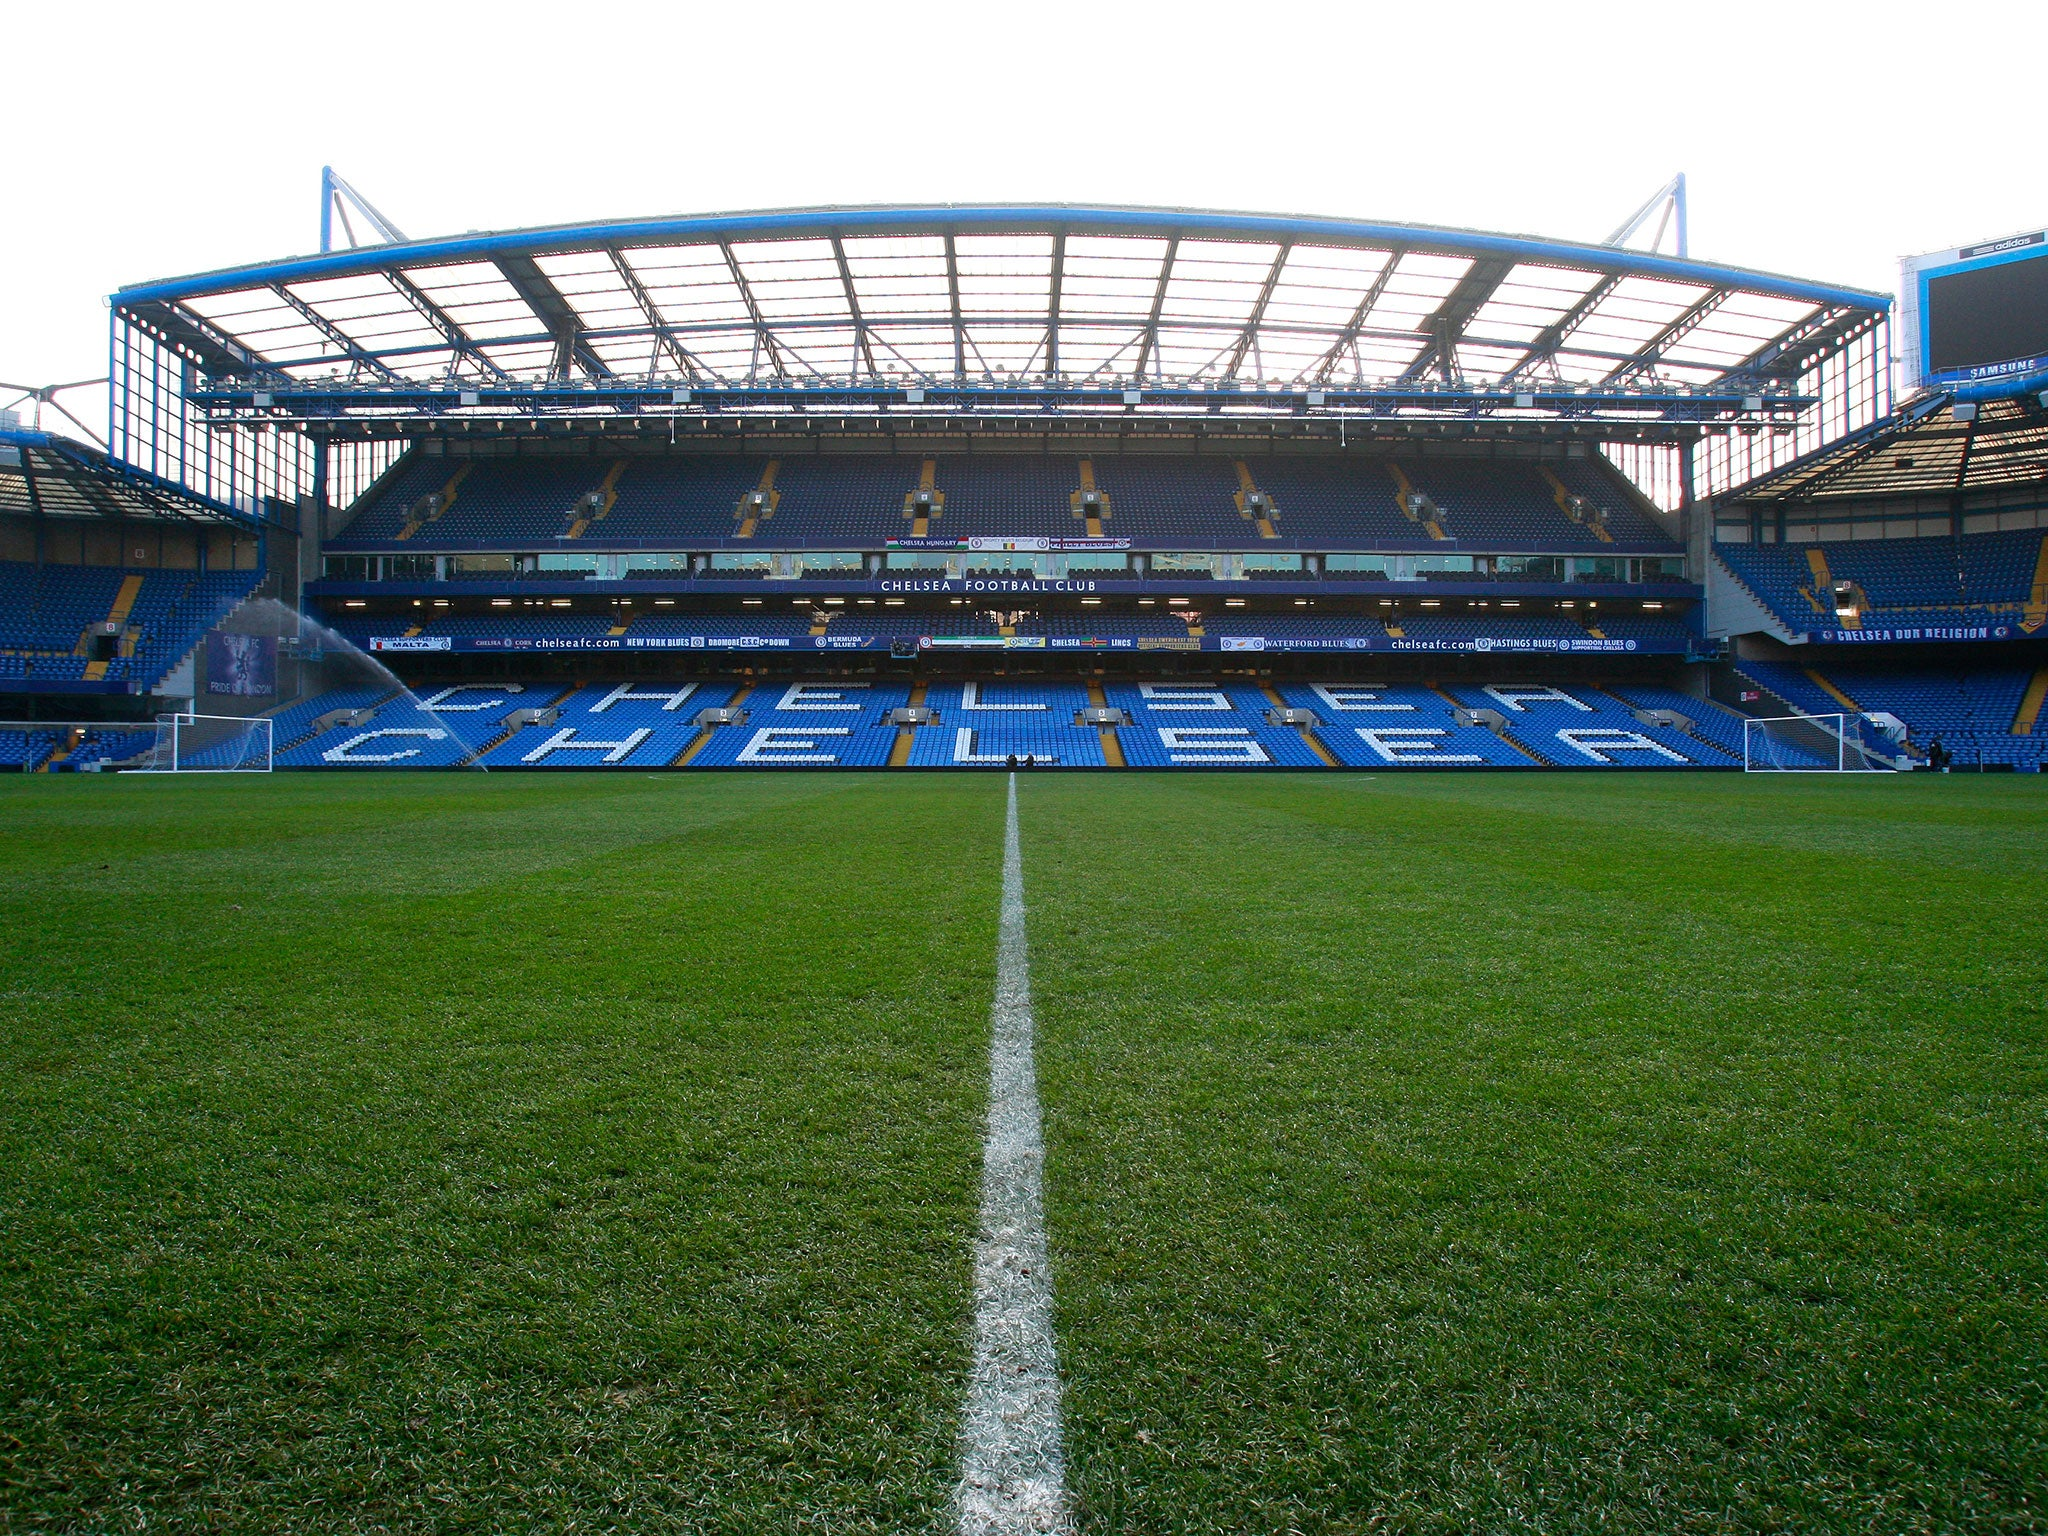 Roman Abramovich S Chelsea Stadium Rebuild Faces Being Blocked By One Stubborn Homeowner The Independent The Independent